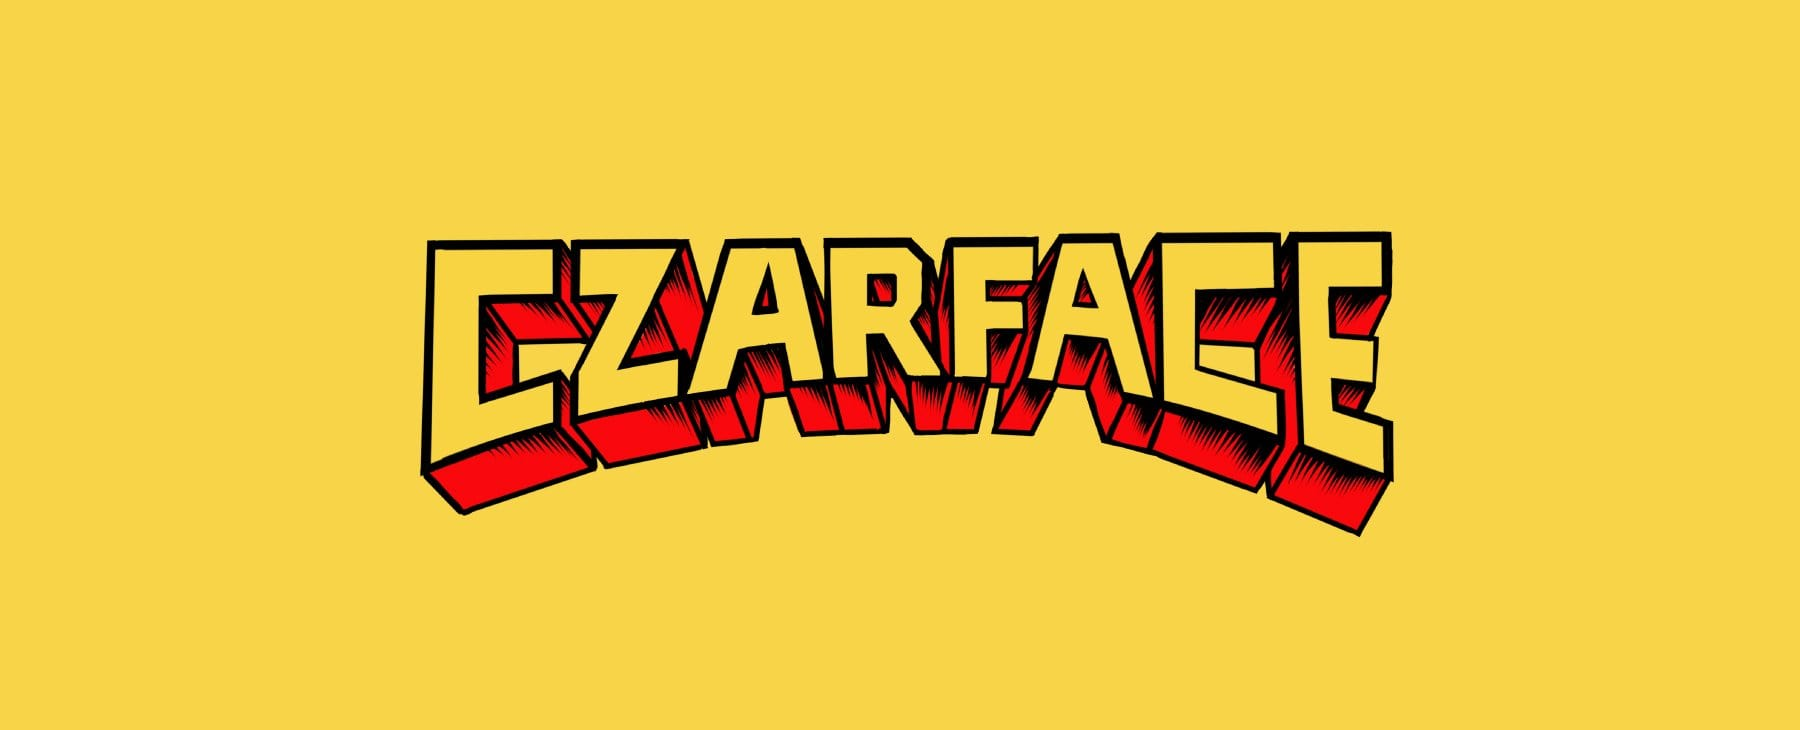 Czarface - Meet the Antihero